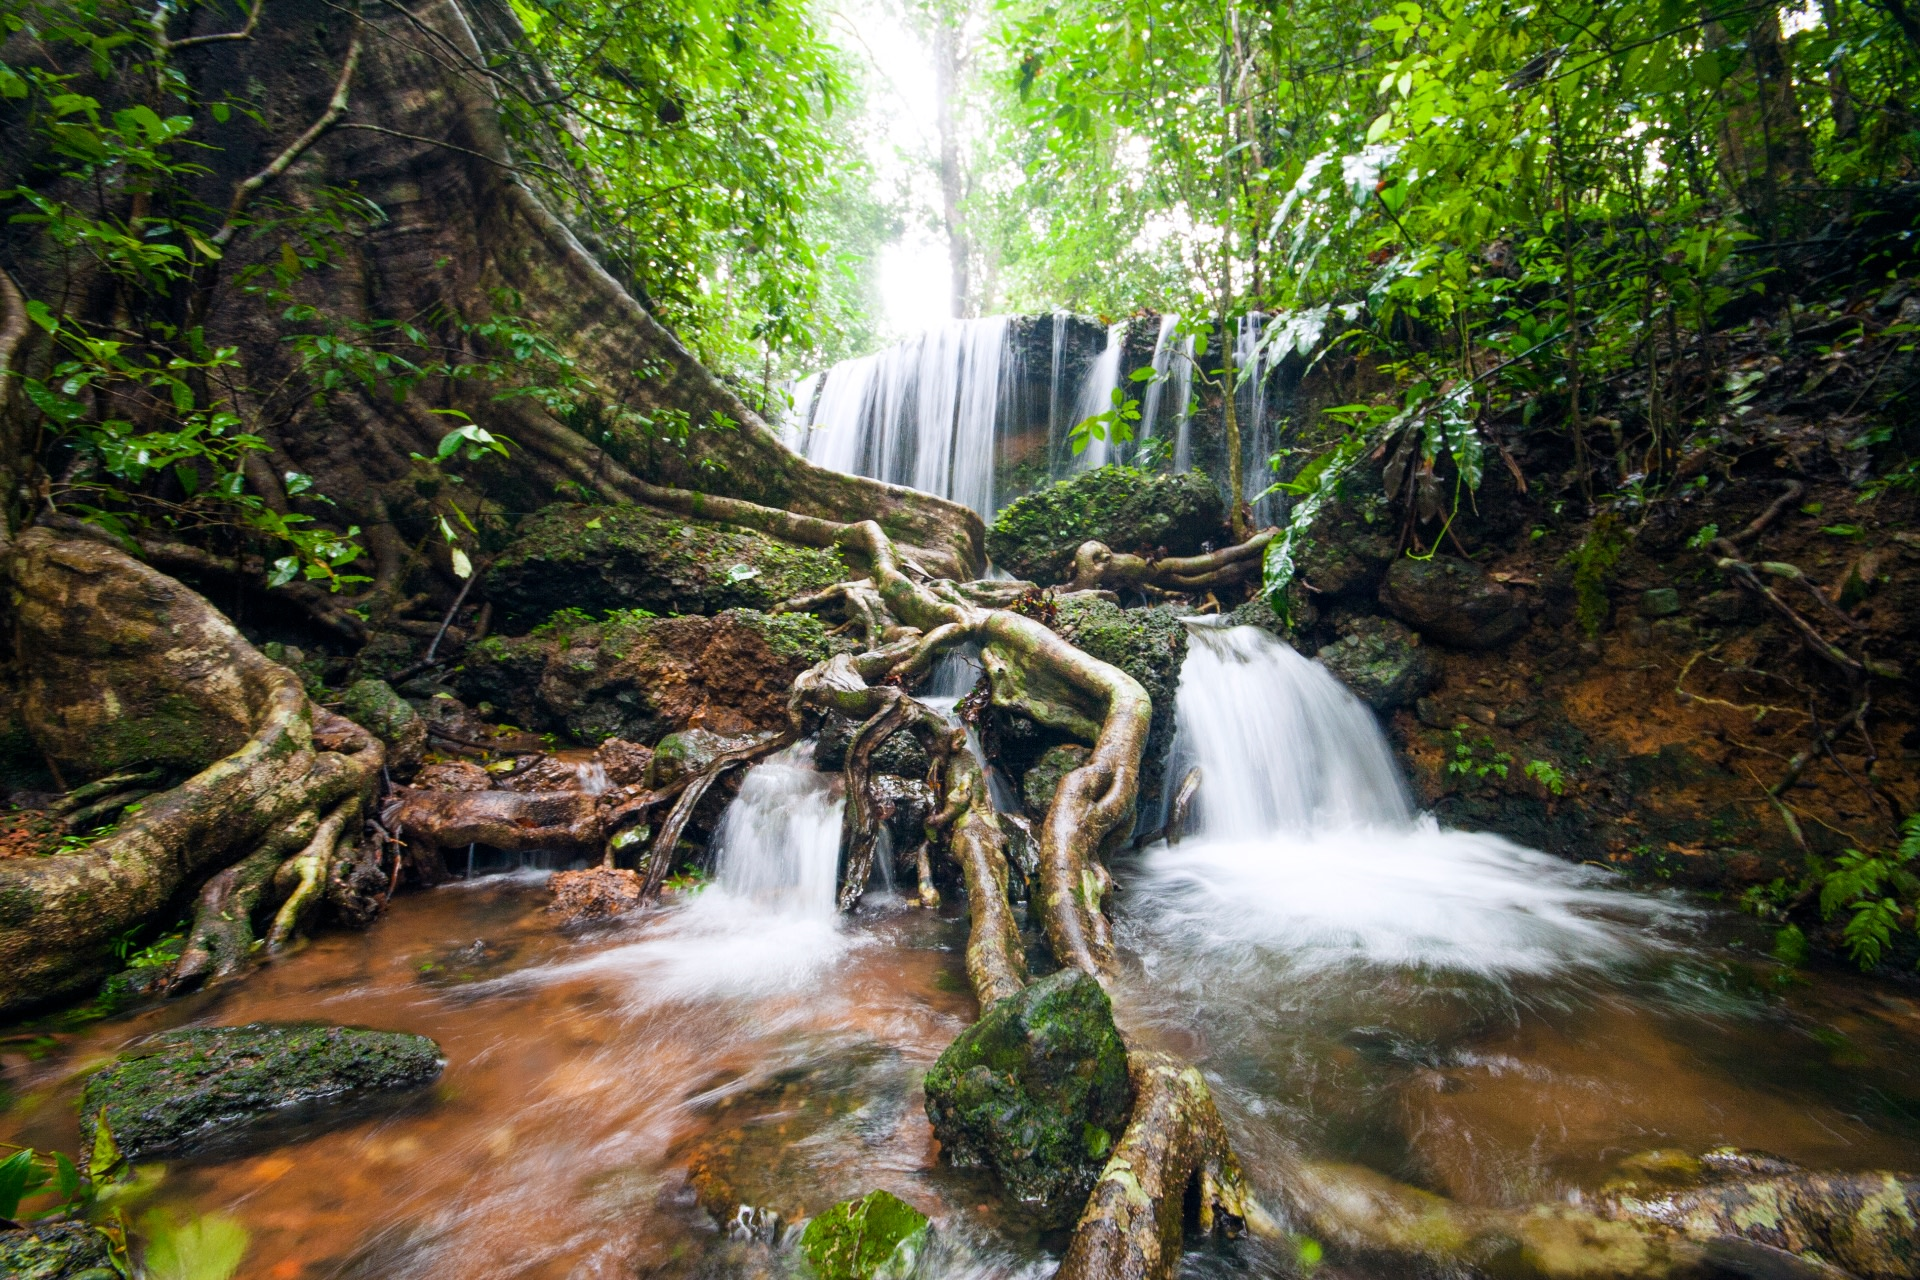 Waterfalls and cascades abound in Agumbe and can be seen in all their glory during the monsoon. Photo: Saurabh Sawant